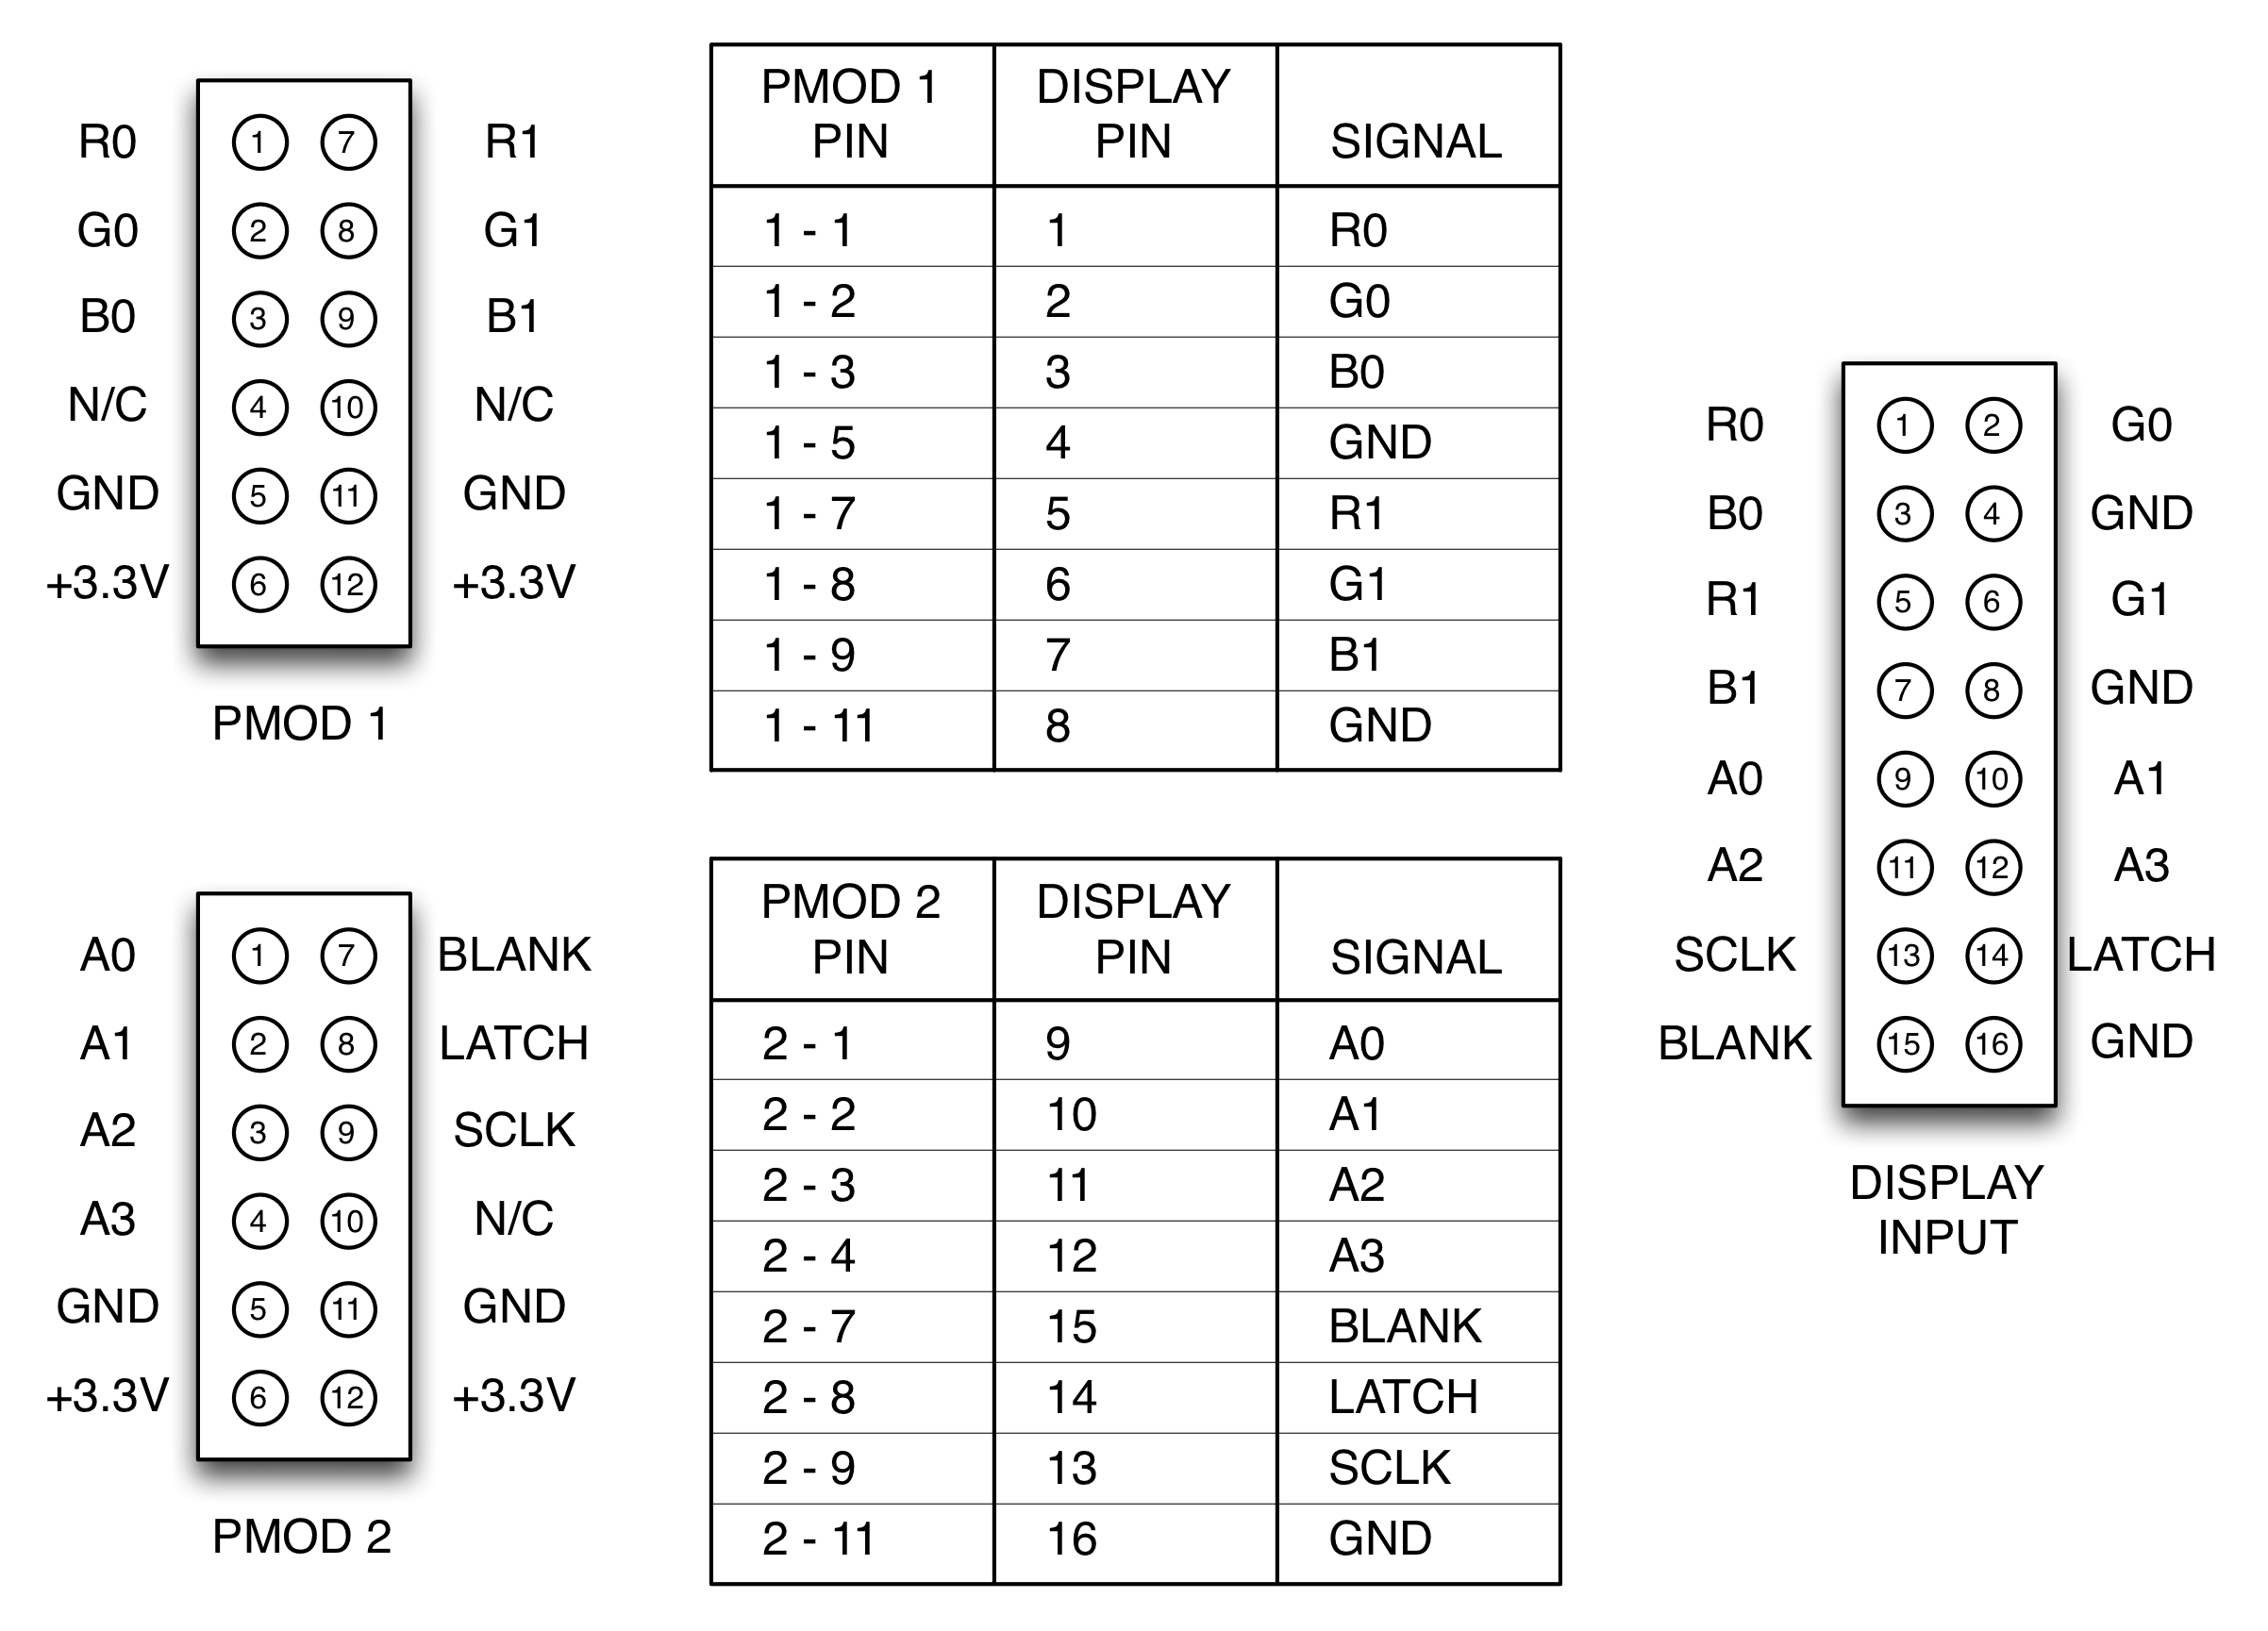 Outdoor Led Display Wiring Diagram Library 4 Pin Power Connector Data Connections